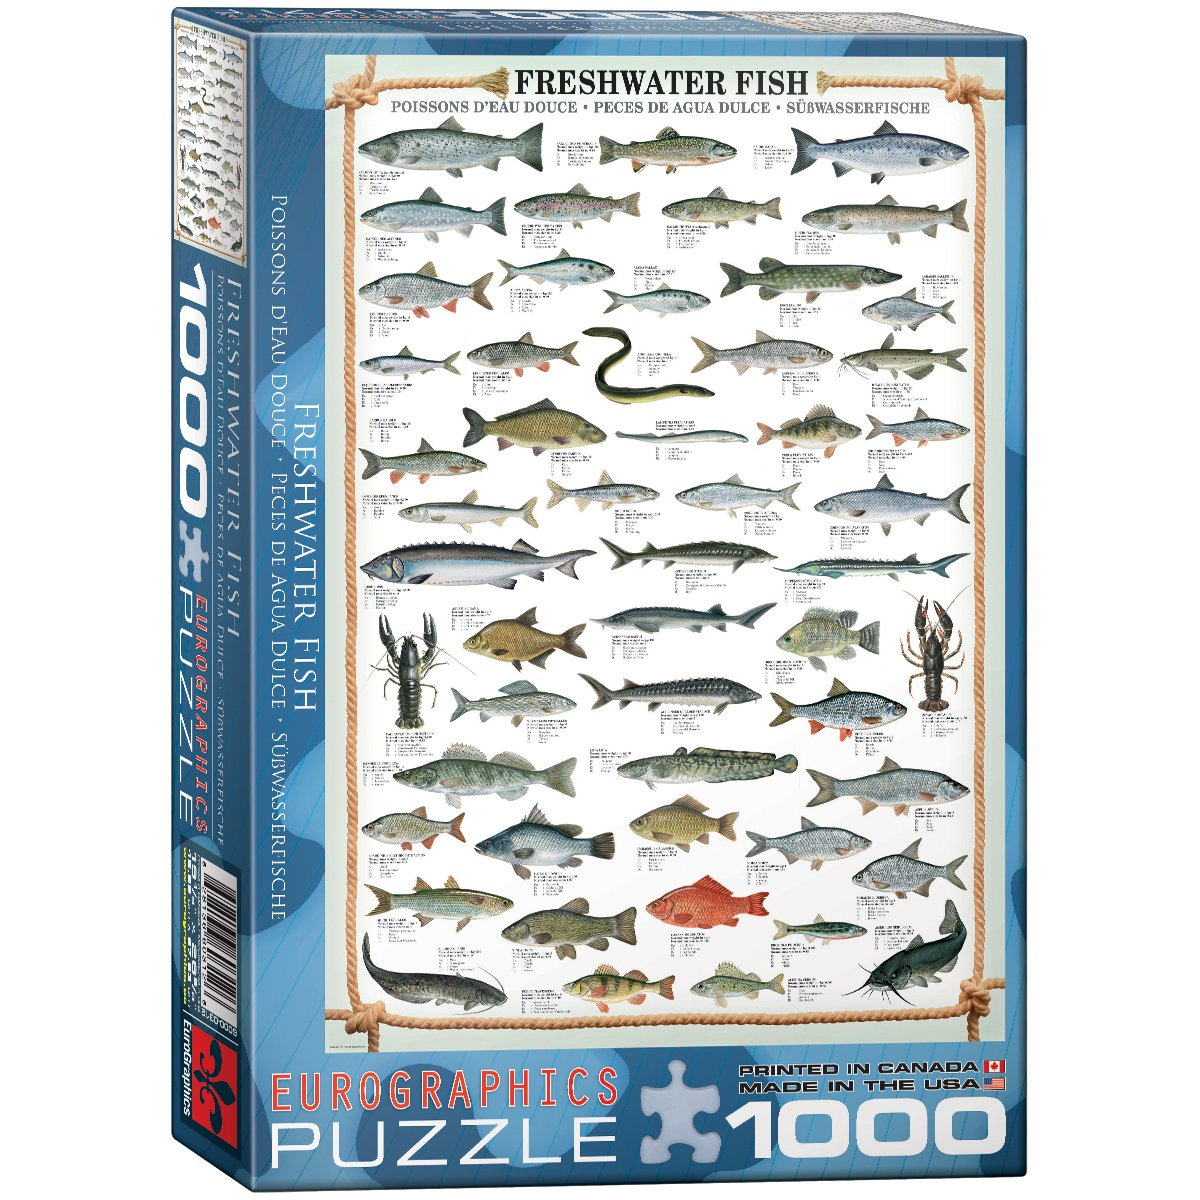 Freshwater fish online canada - Freshwater Fish Online Canada